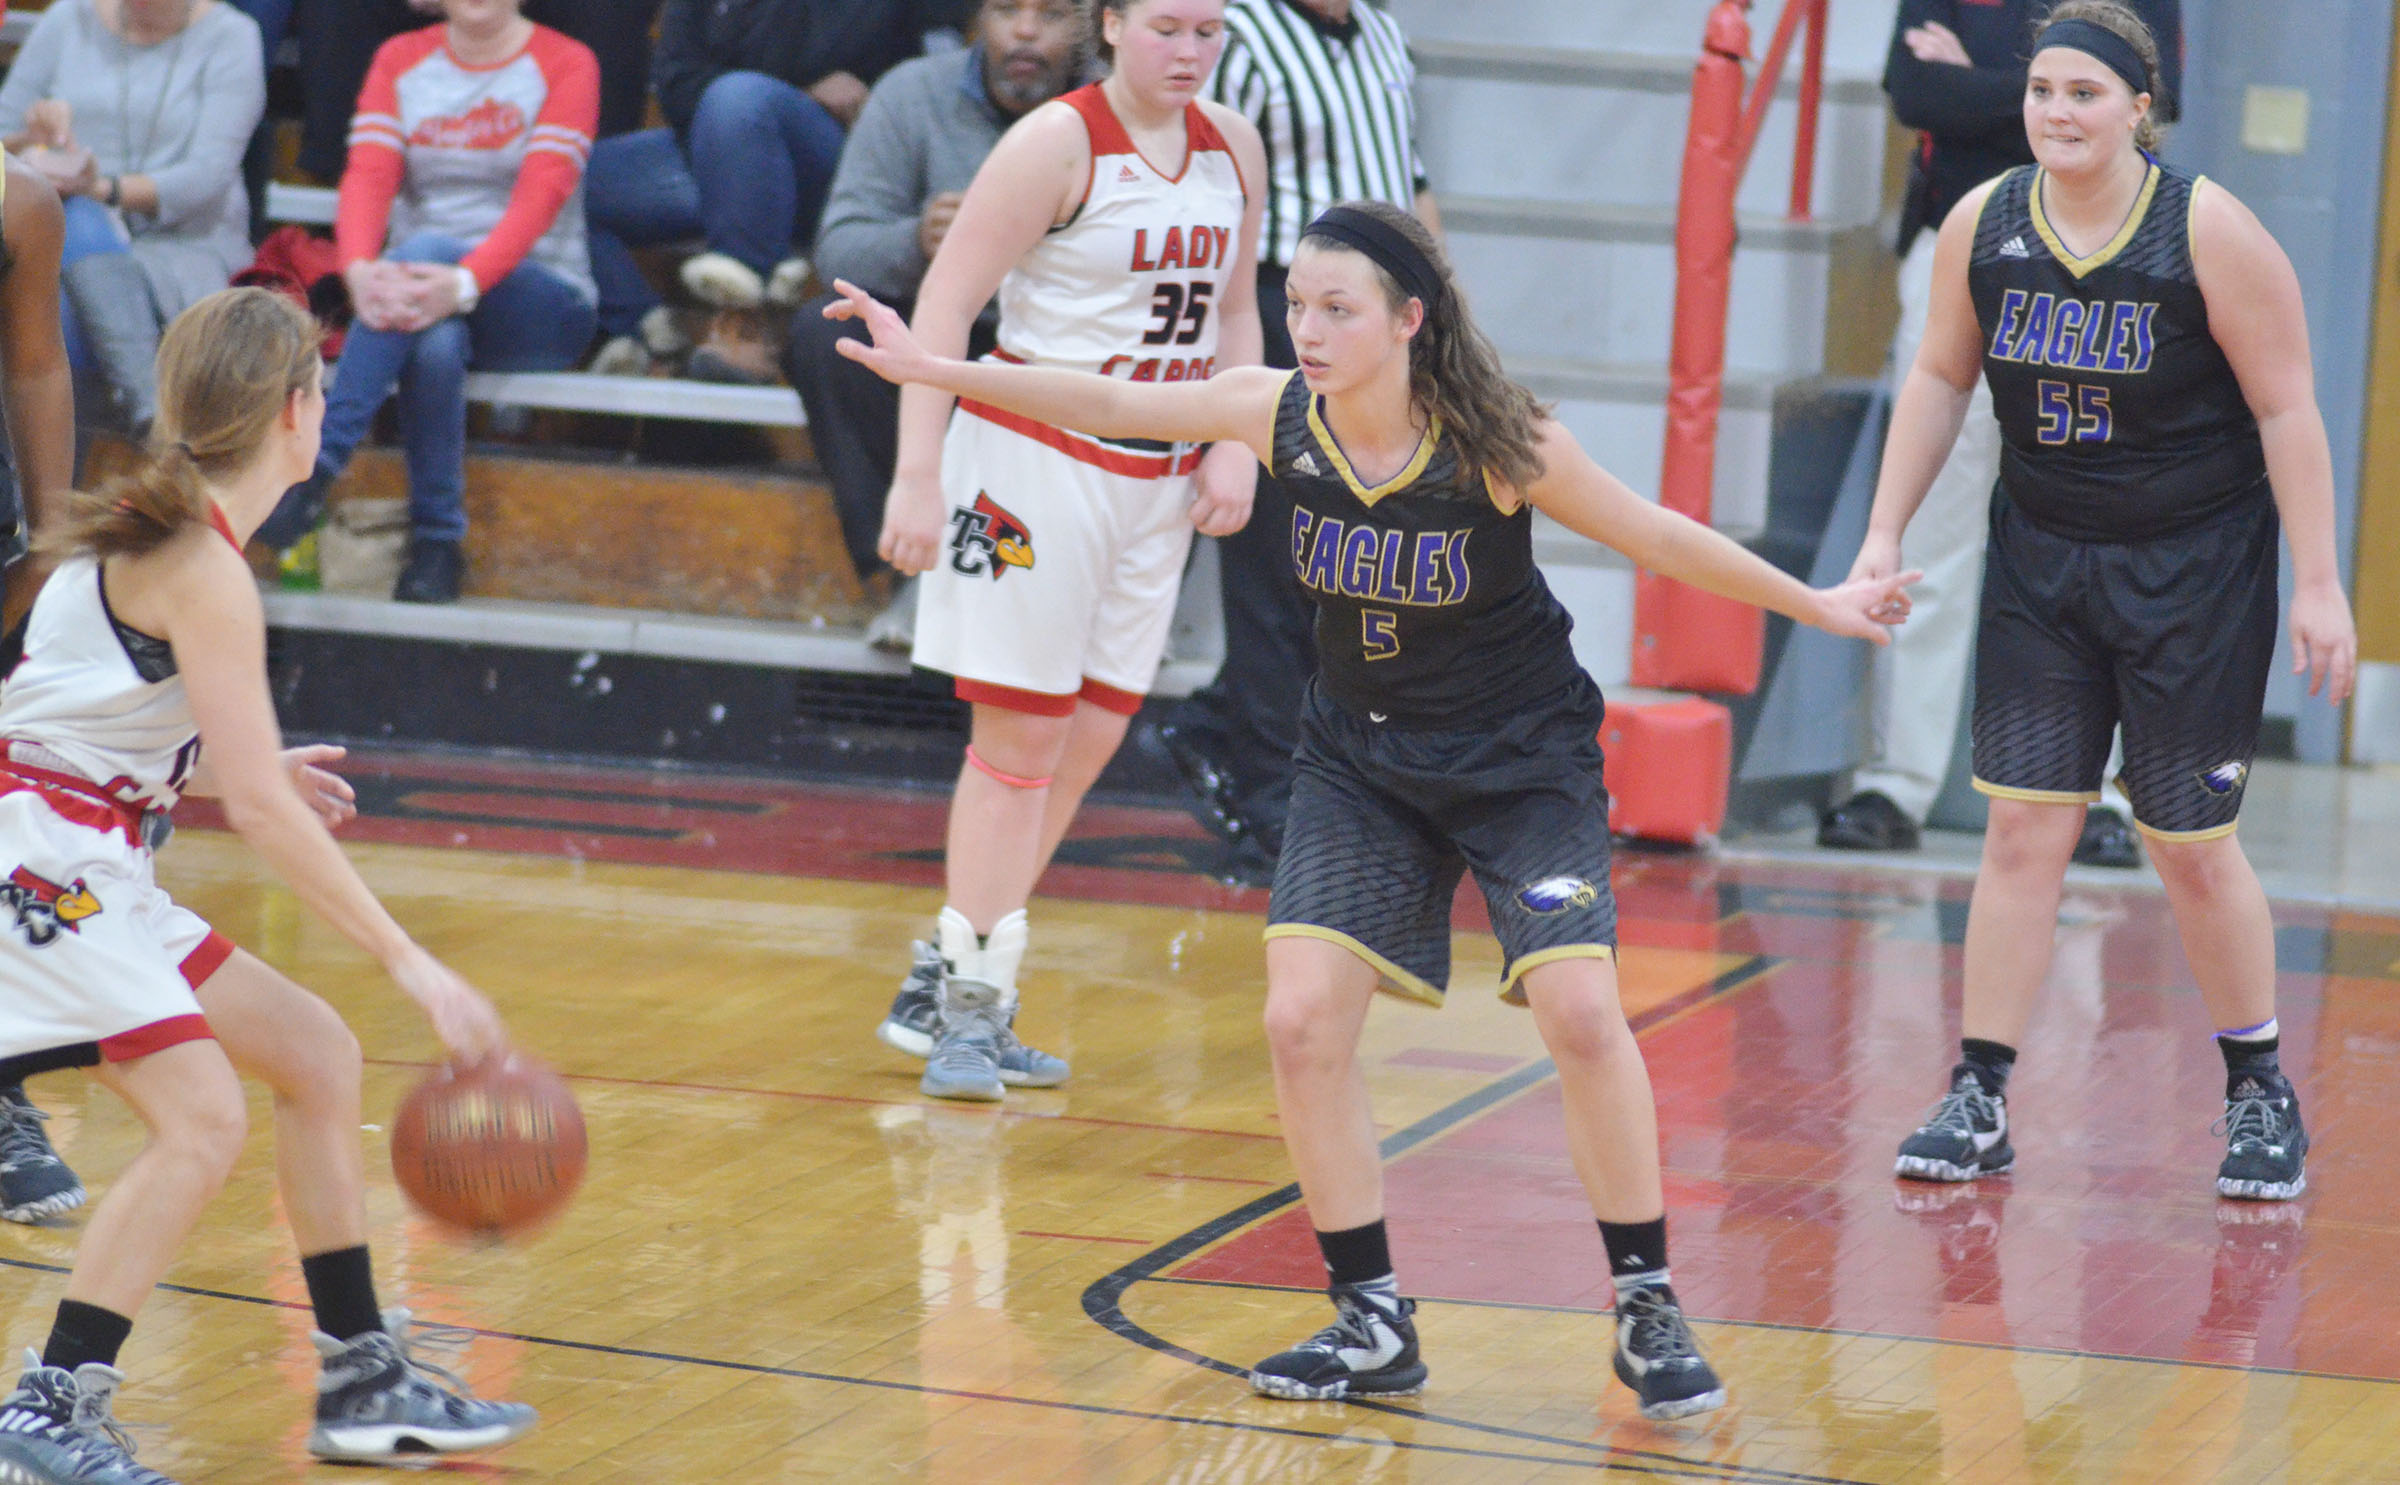 CHS seniors Caylie Blair, in front, and Brenna Wethington play defense.